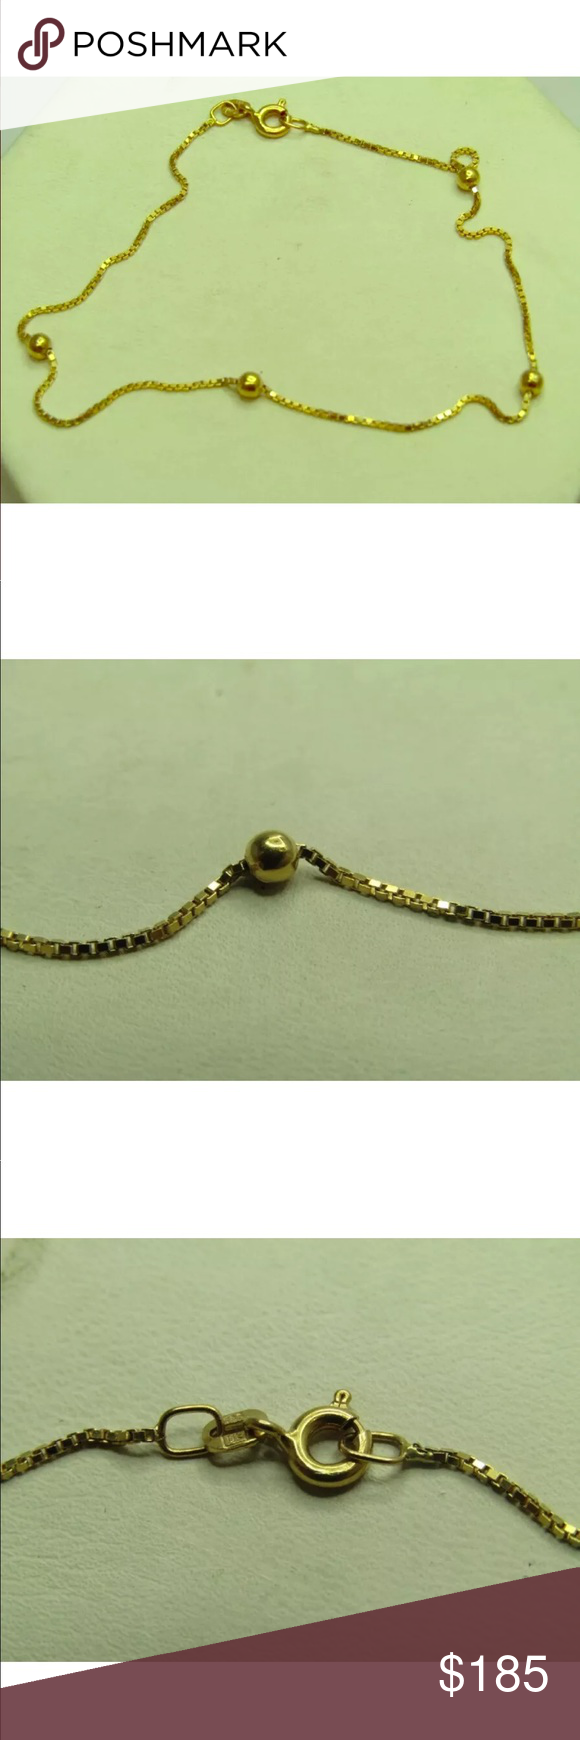 bracelet karat yellow elle jewels gold by ankle link bracelets product anklet cuban chain